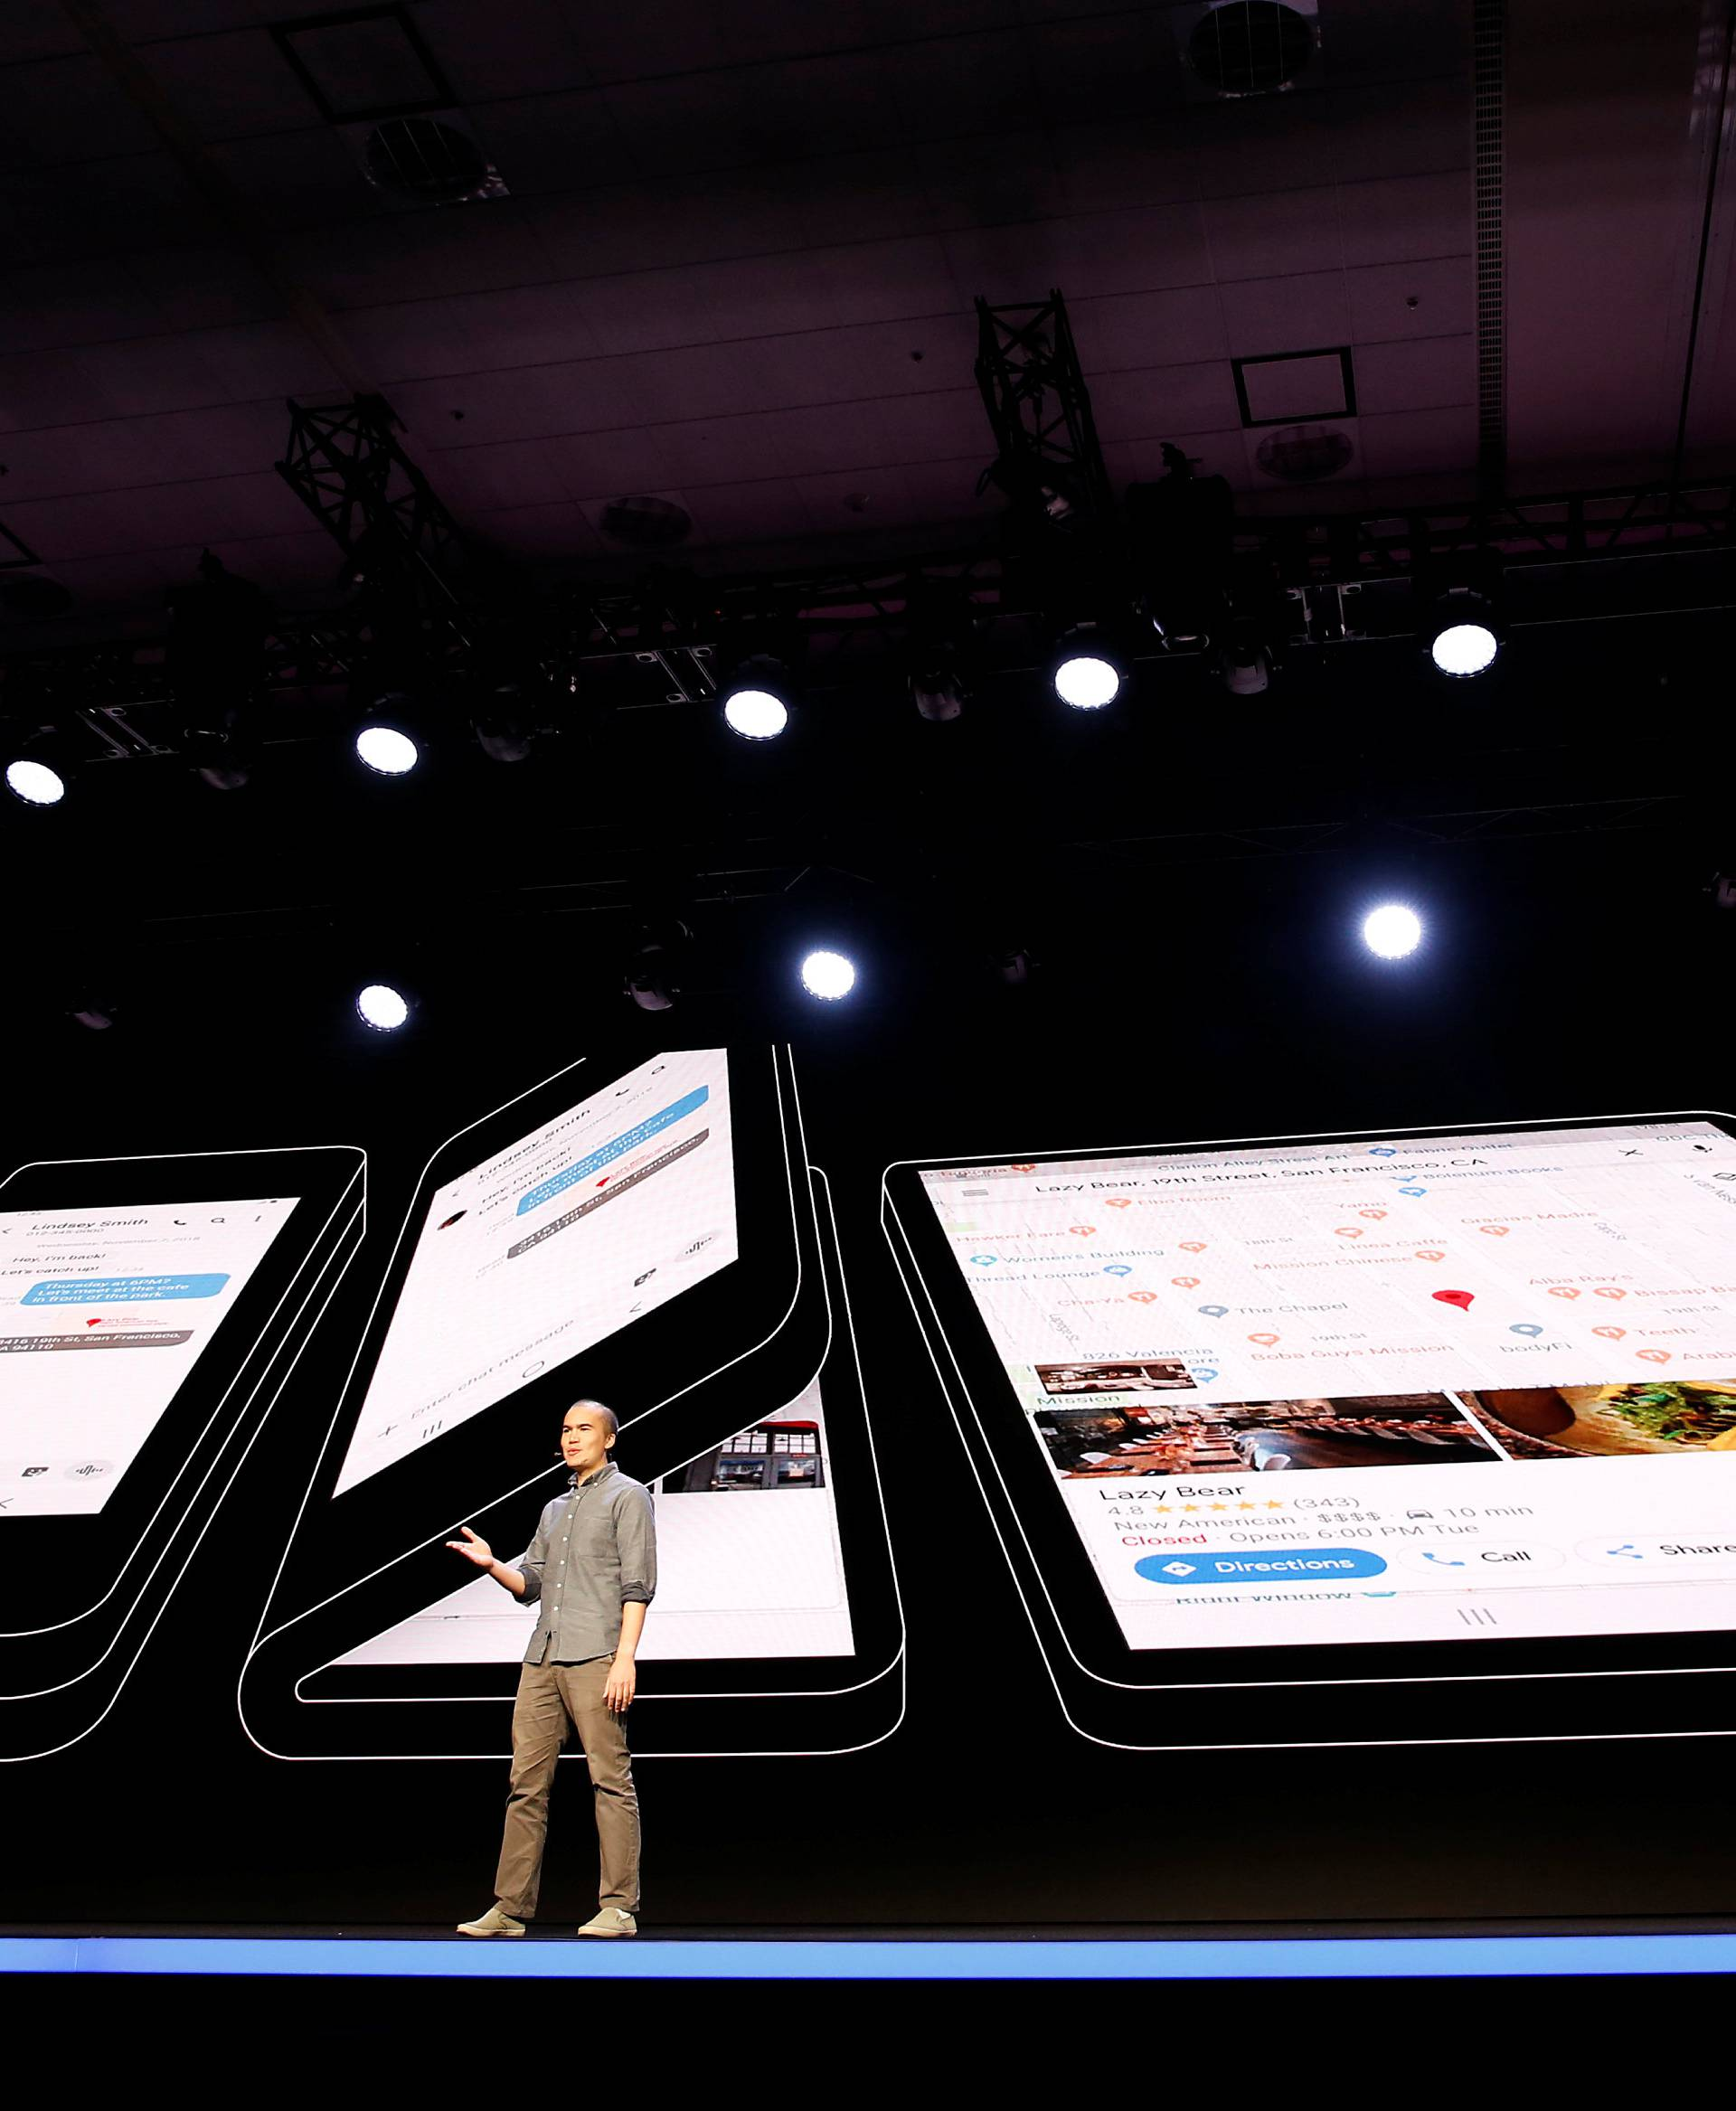 Samsung unveils foldable screen display in San Francisco